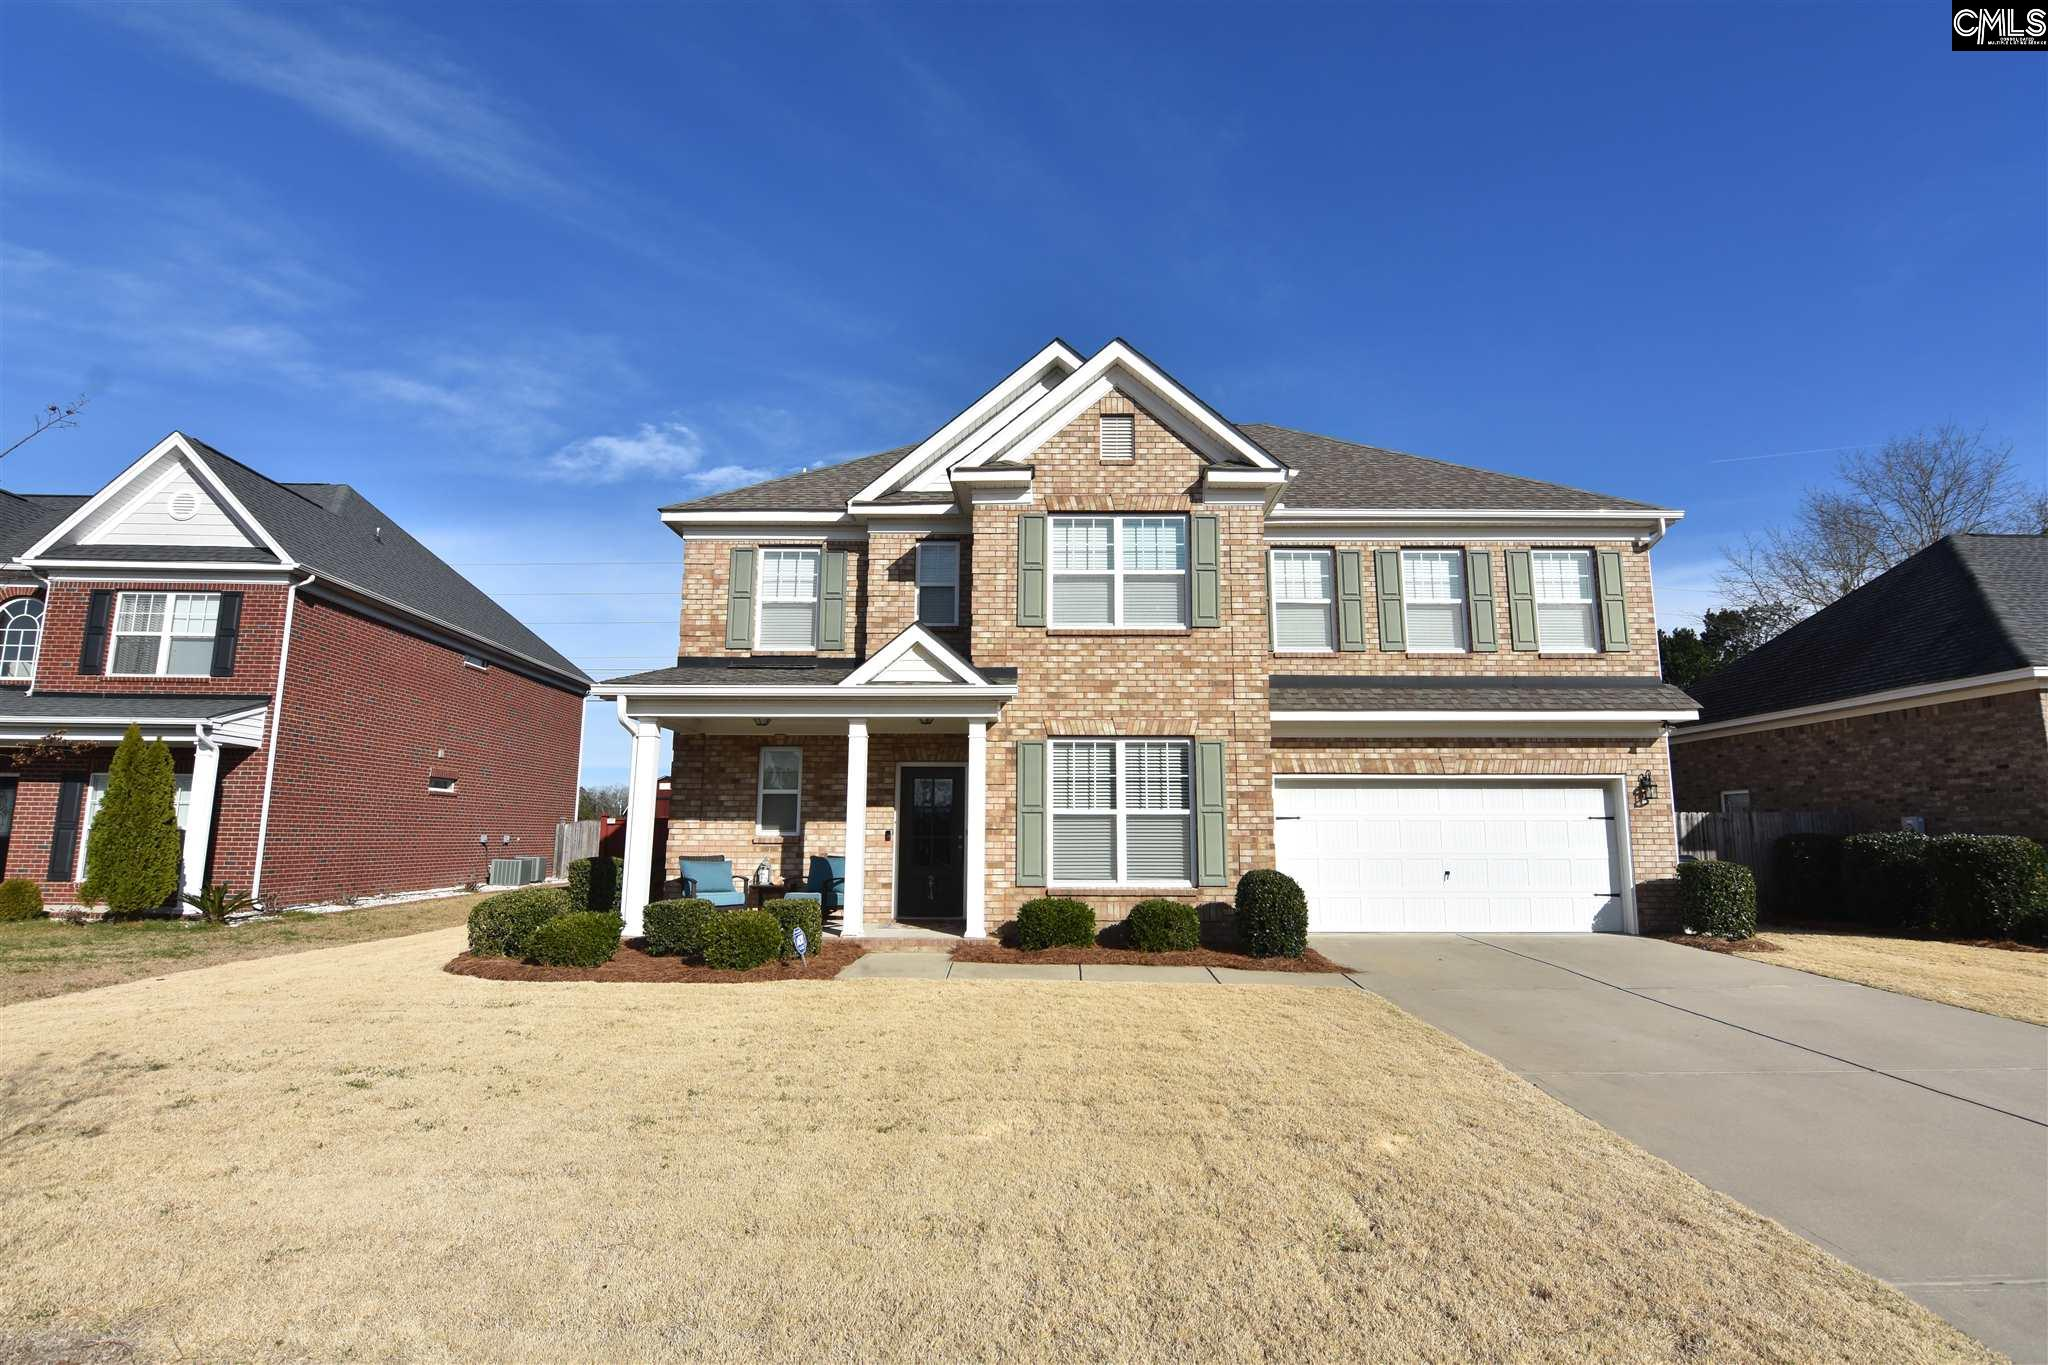 214 Pisgah Flats Lexington, SC 29072-6936